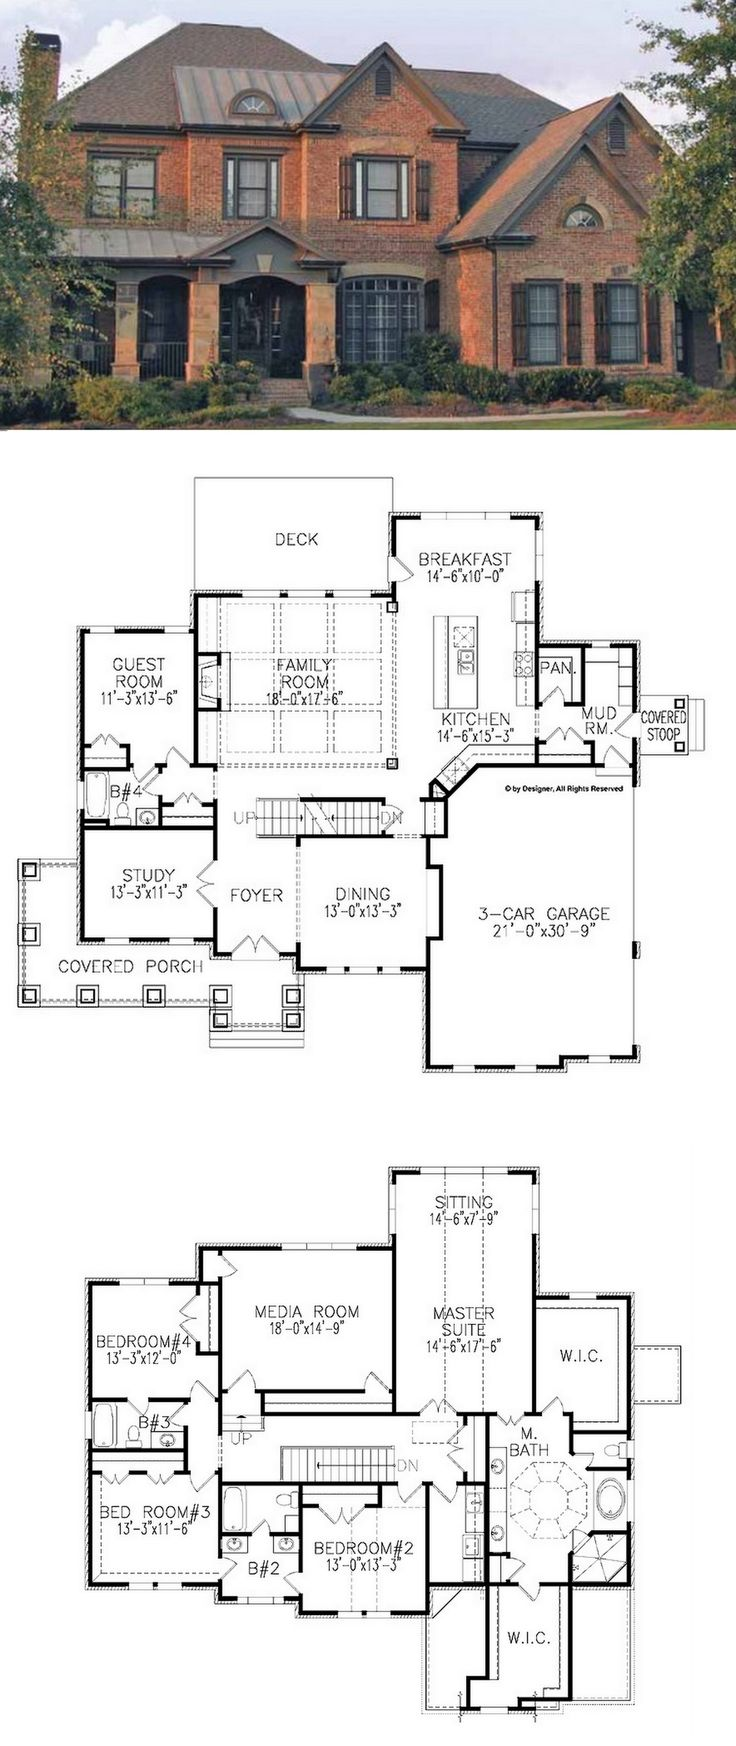 Best 25 5 bedroom house plans ideas only on pinterest 4 for 5 bedroom home floor plans